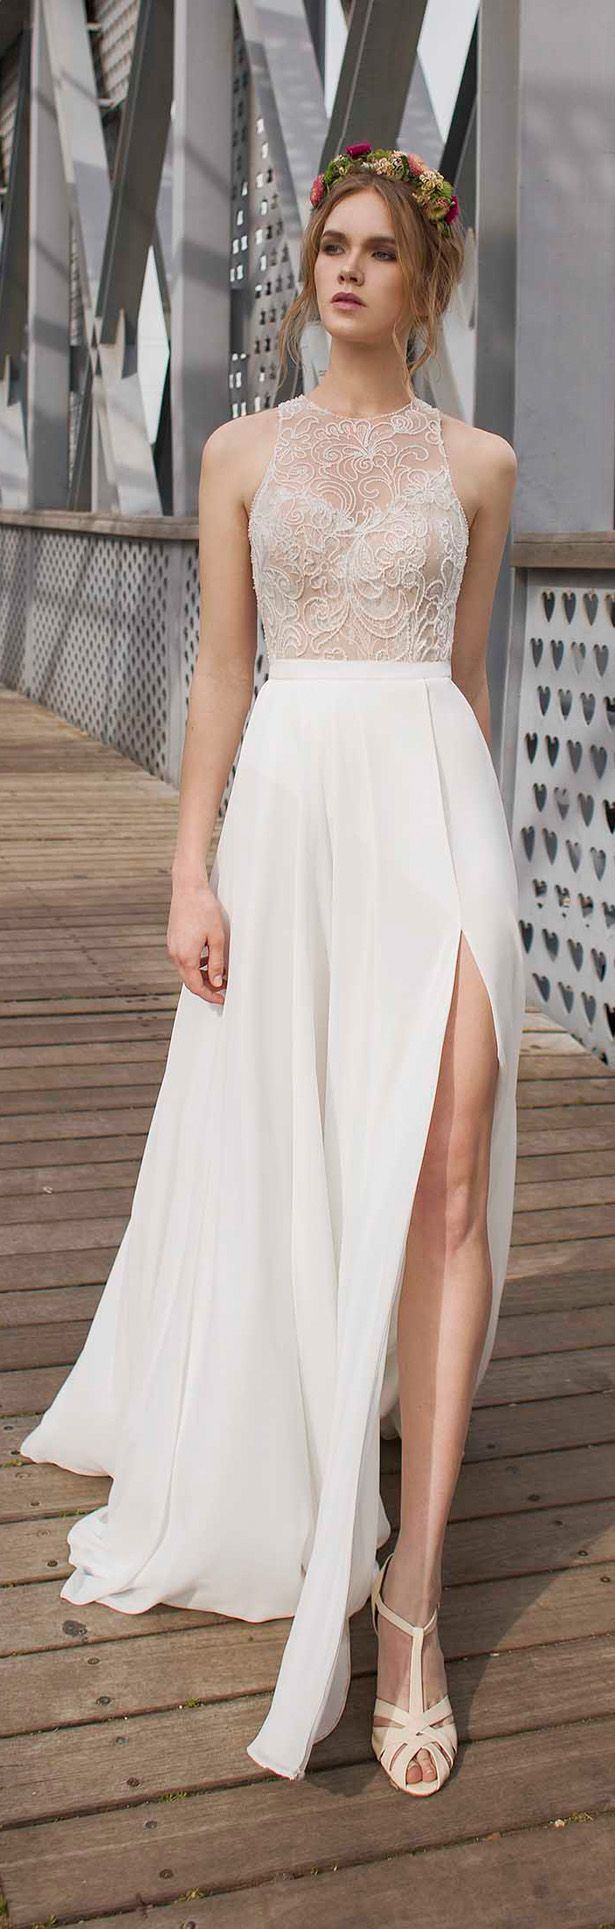 Simple But Elegant Civil Wedding Dress